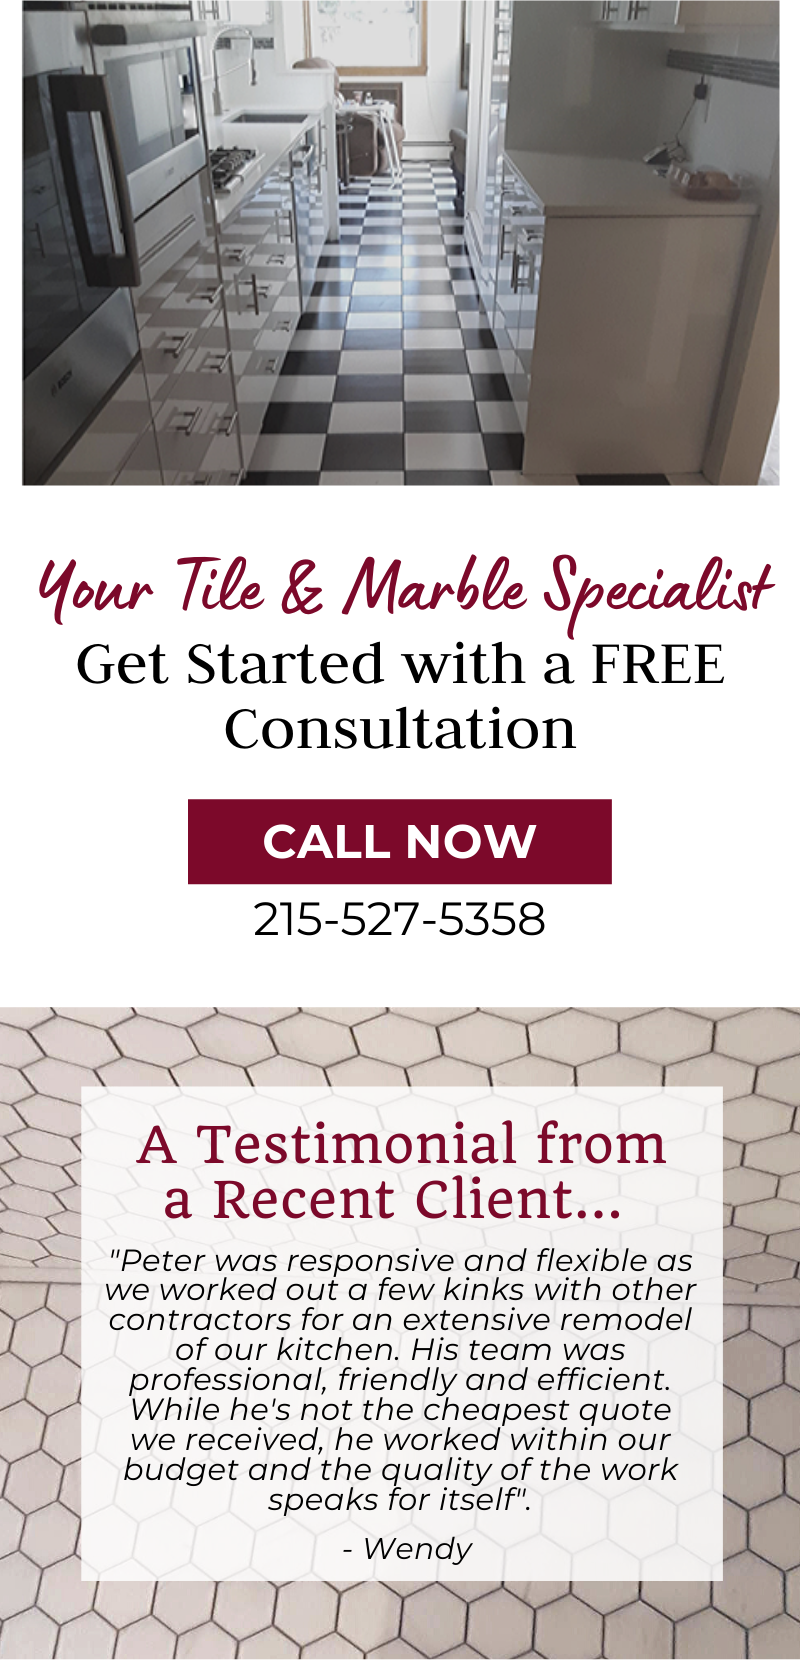 your tile & marble specialist